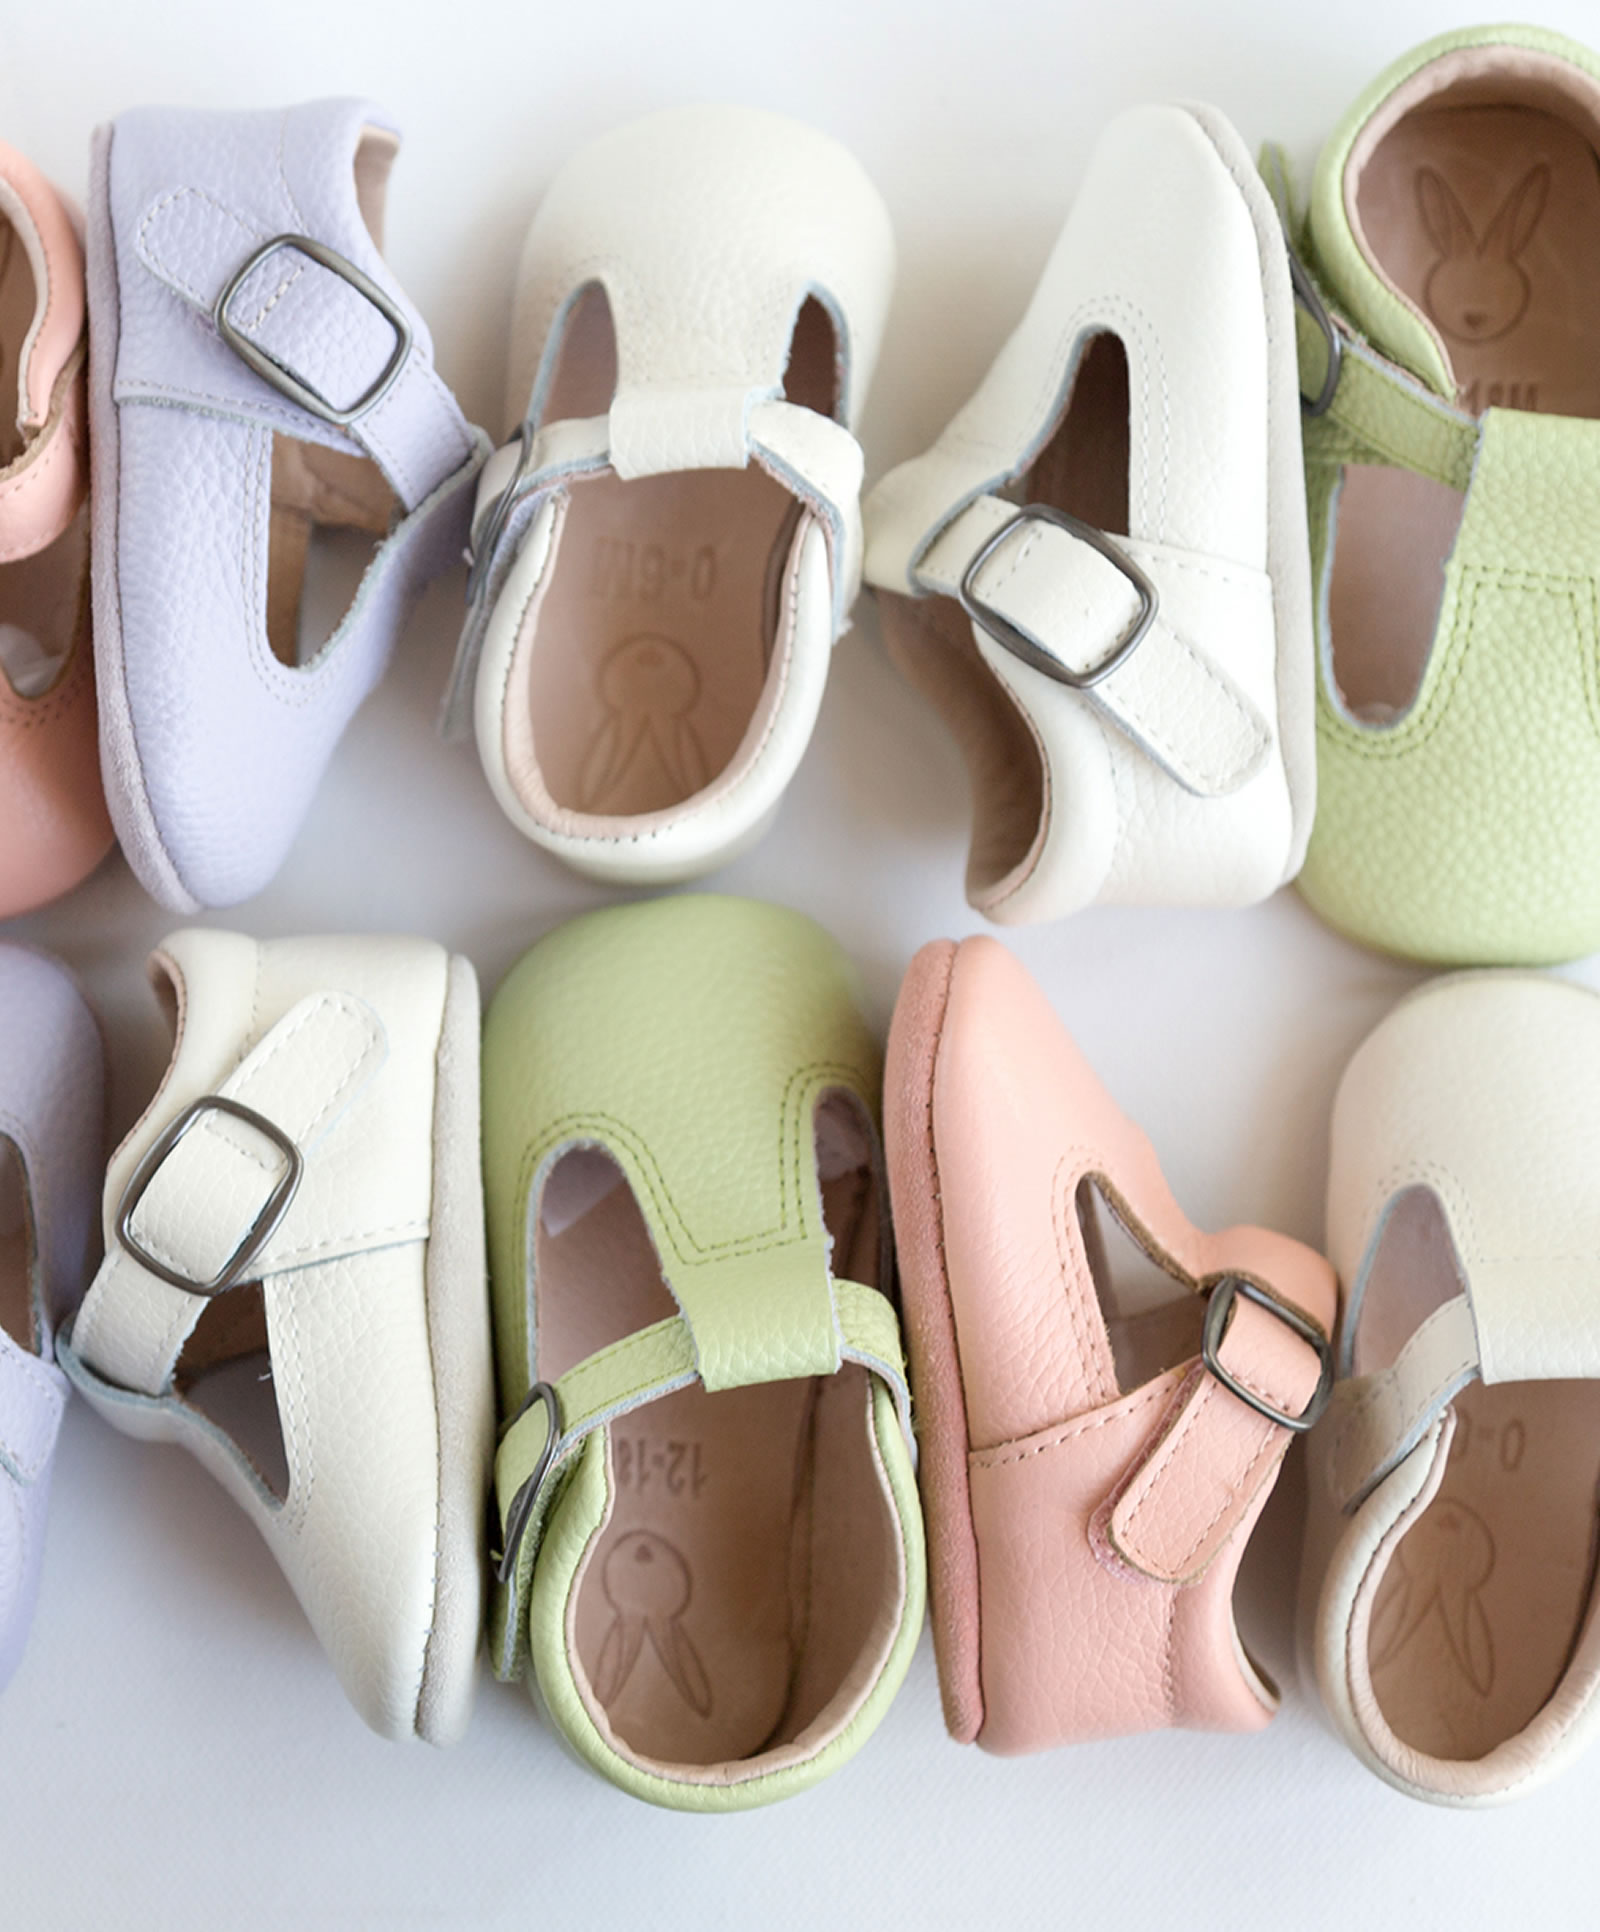 Aston Baby Shoes Spring 2018 Collection